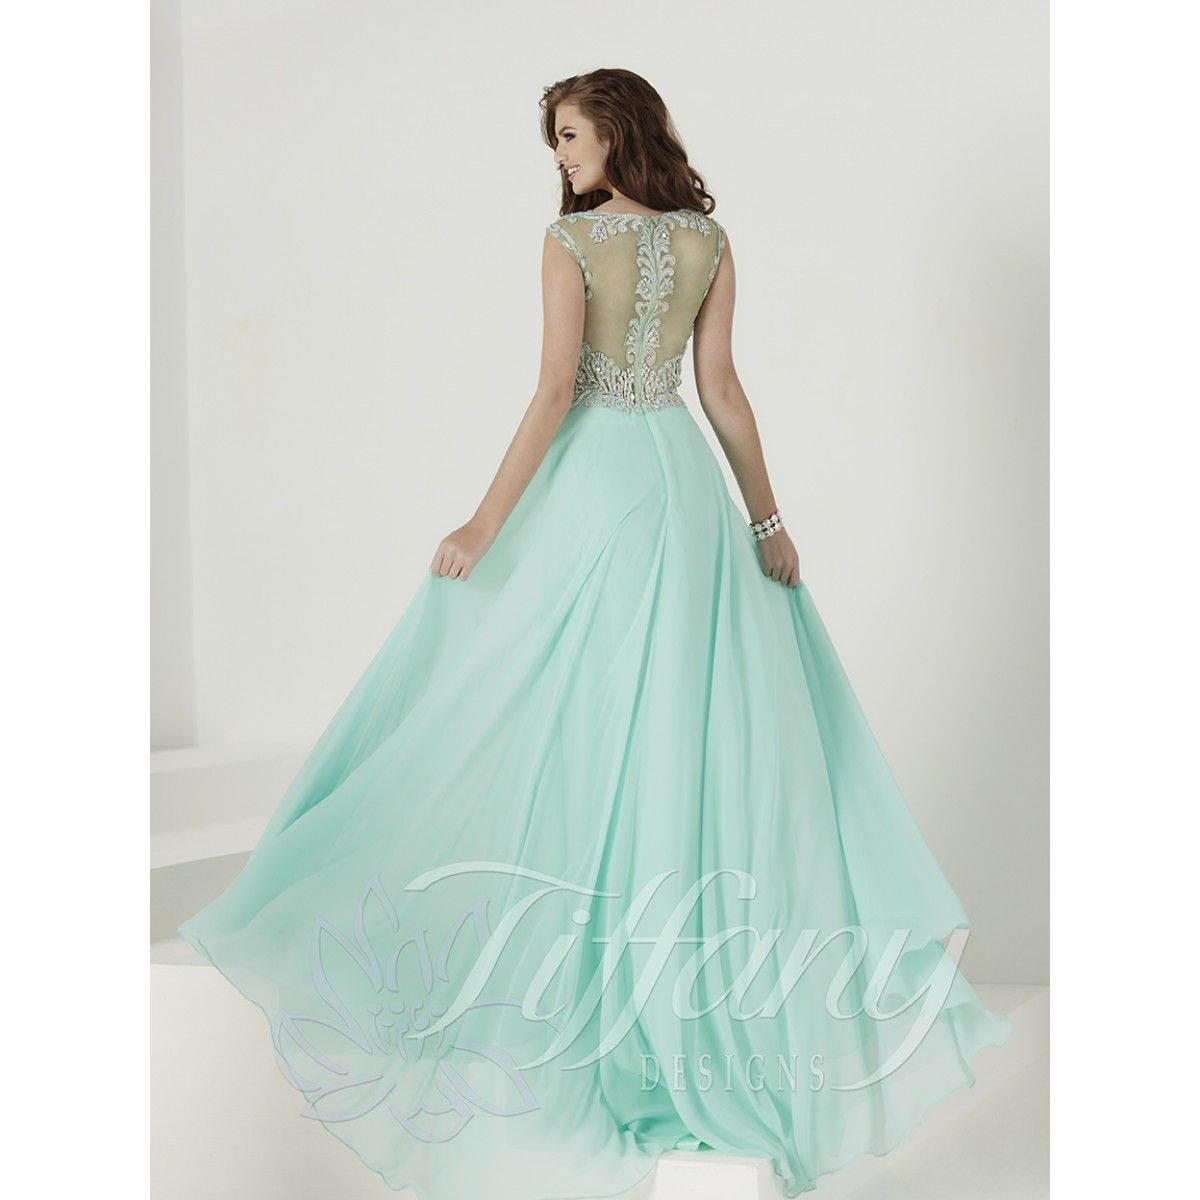 Prom Gown Available at Ella Park Bridal | Newburgh, IN | 812.853 ...